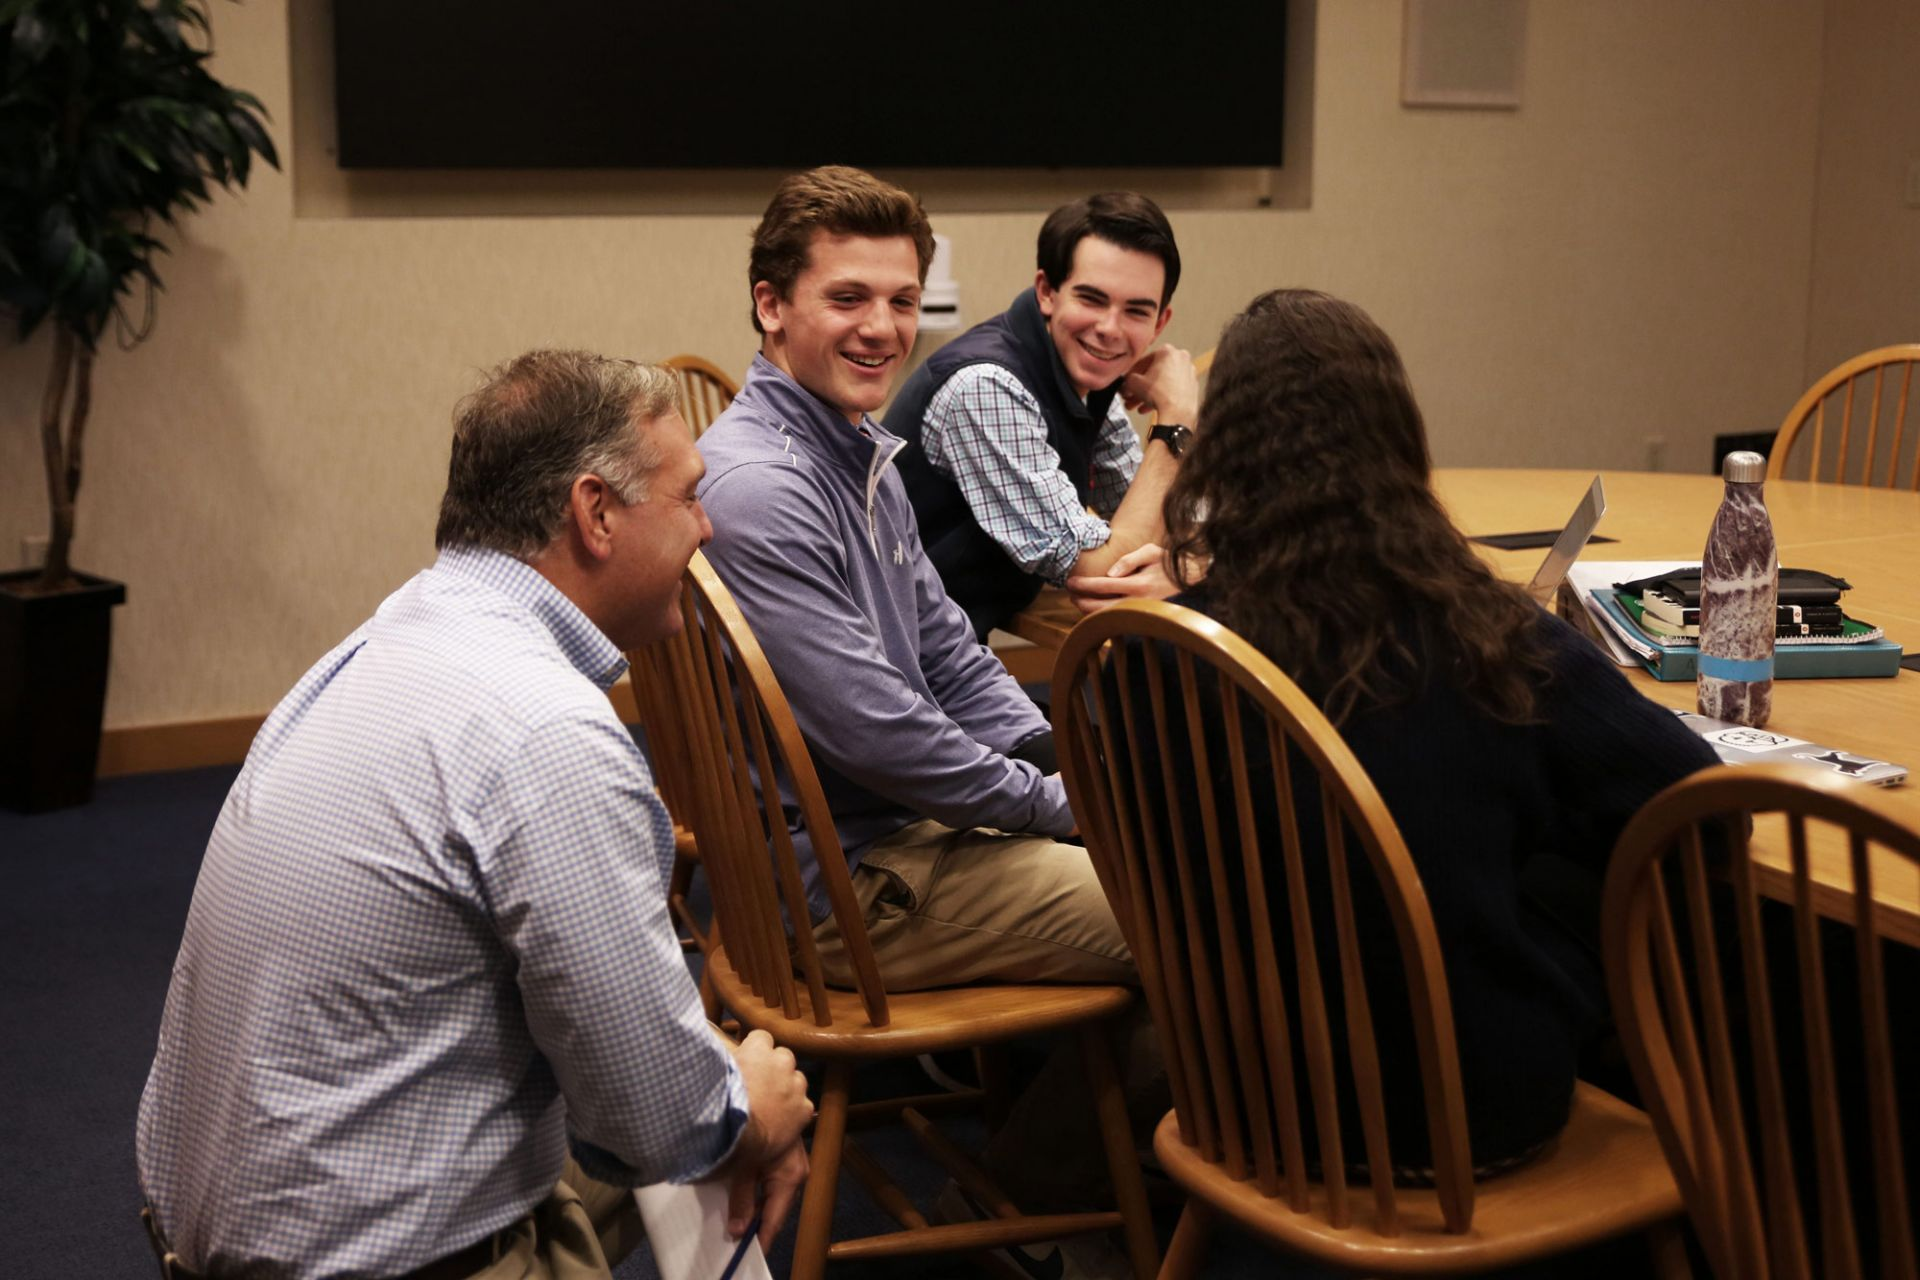 Mike Gaumer, President of Vineyard Vines, listens to a team's concept